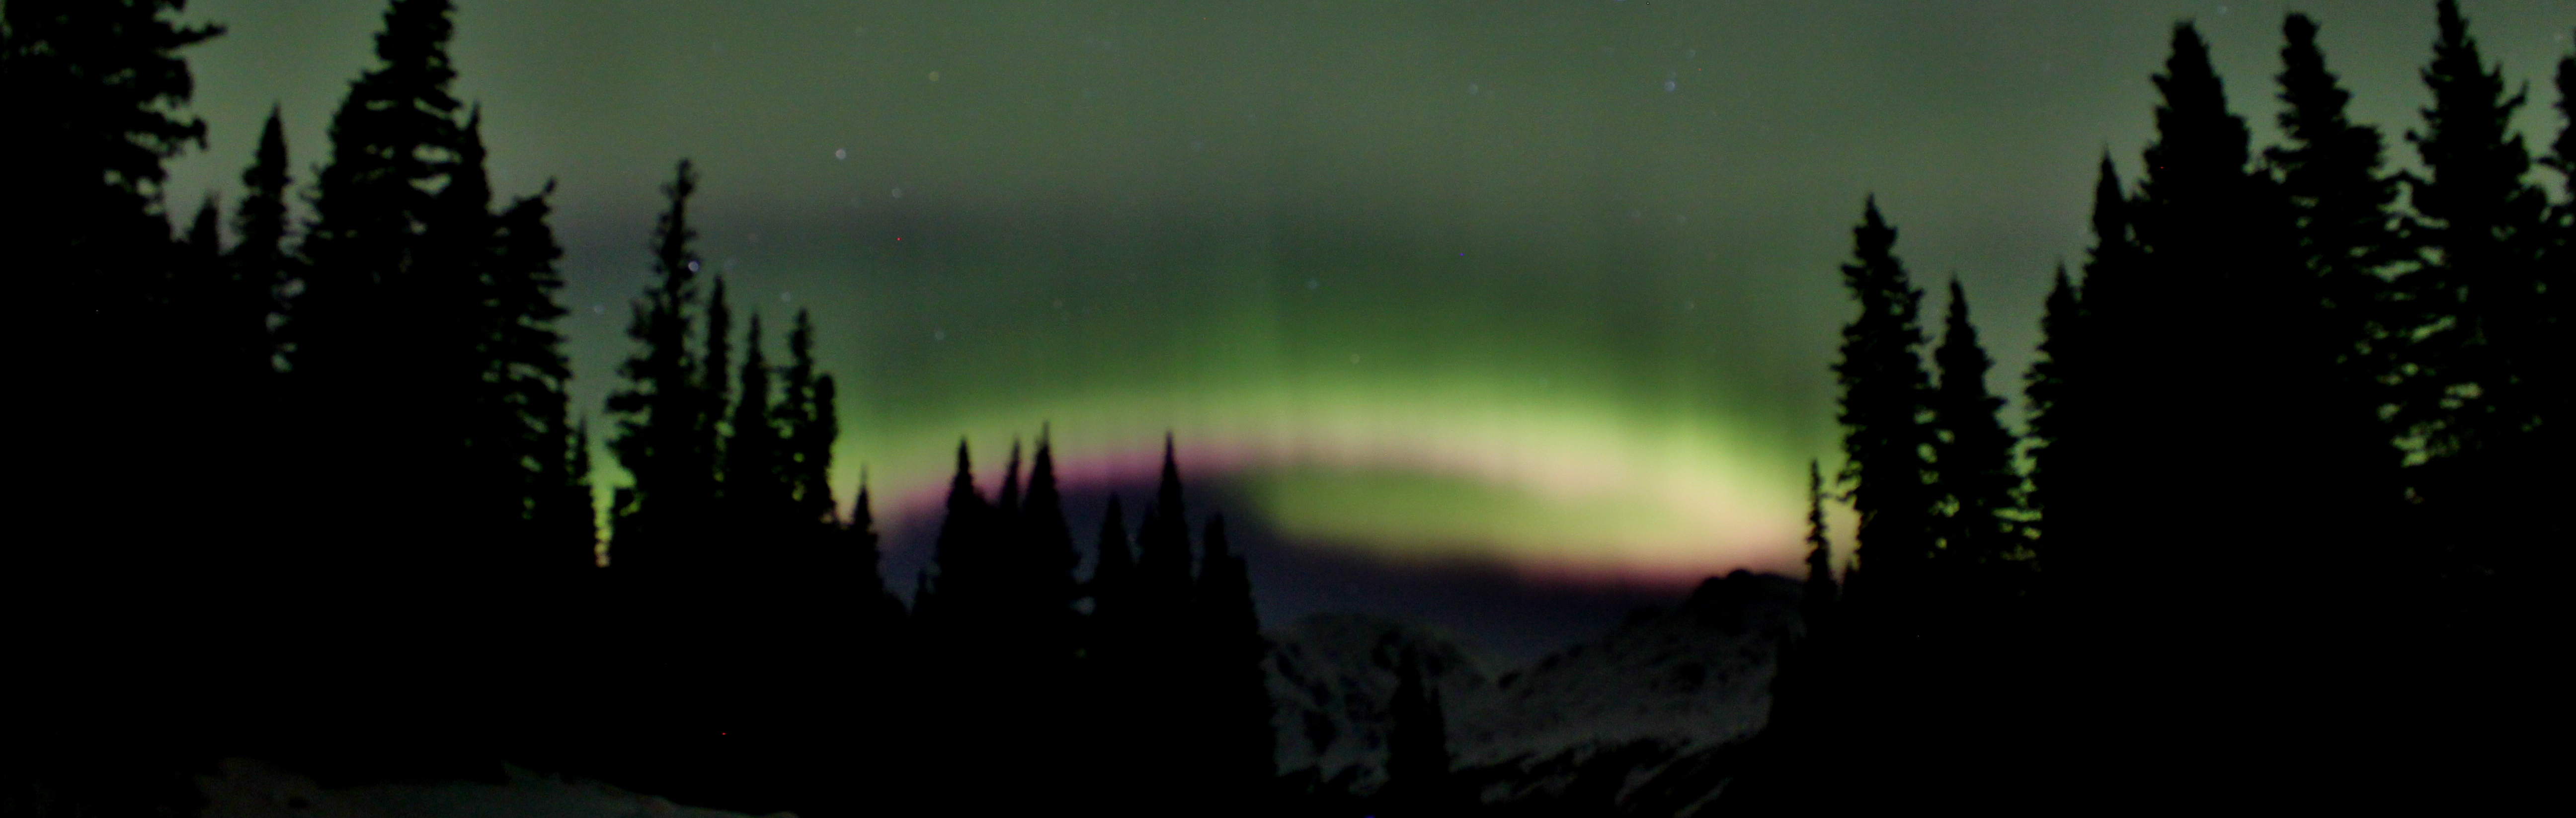 Northern Lights Above the Mountains, Powder King